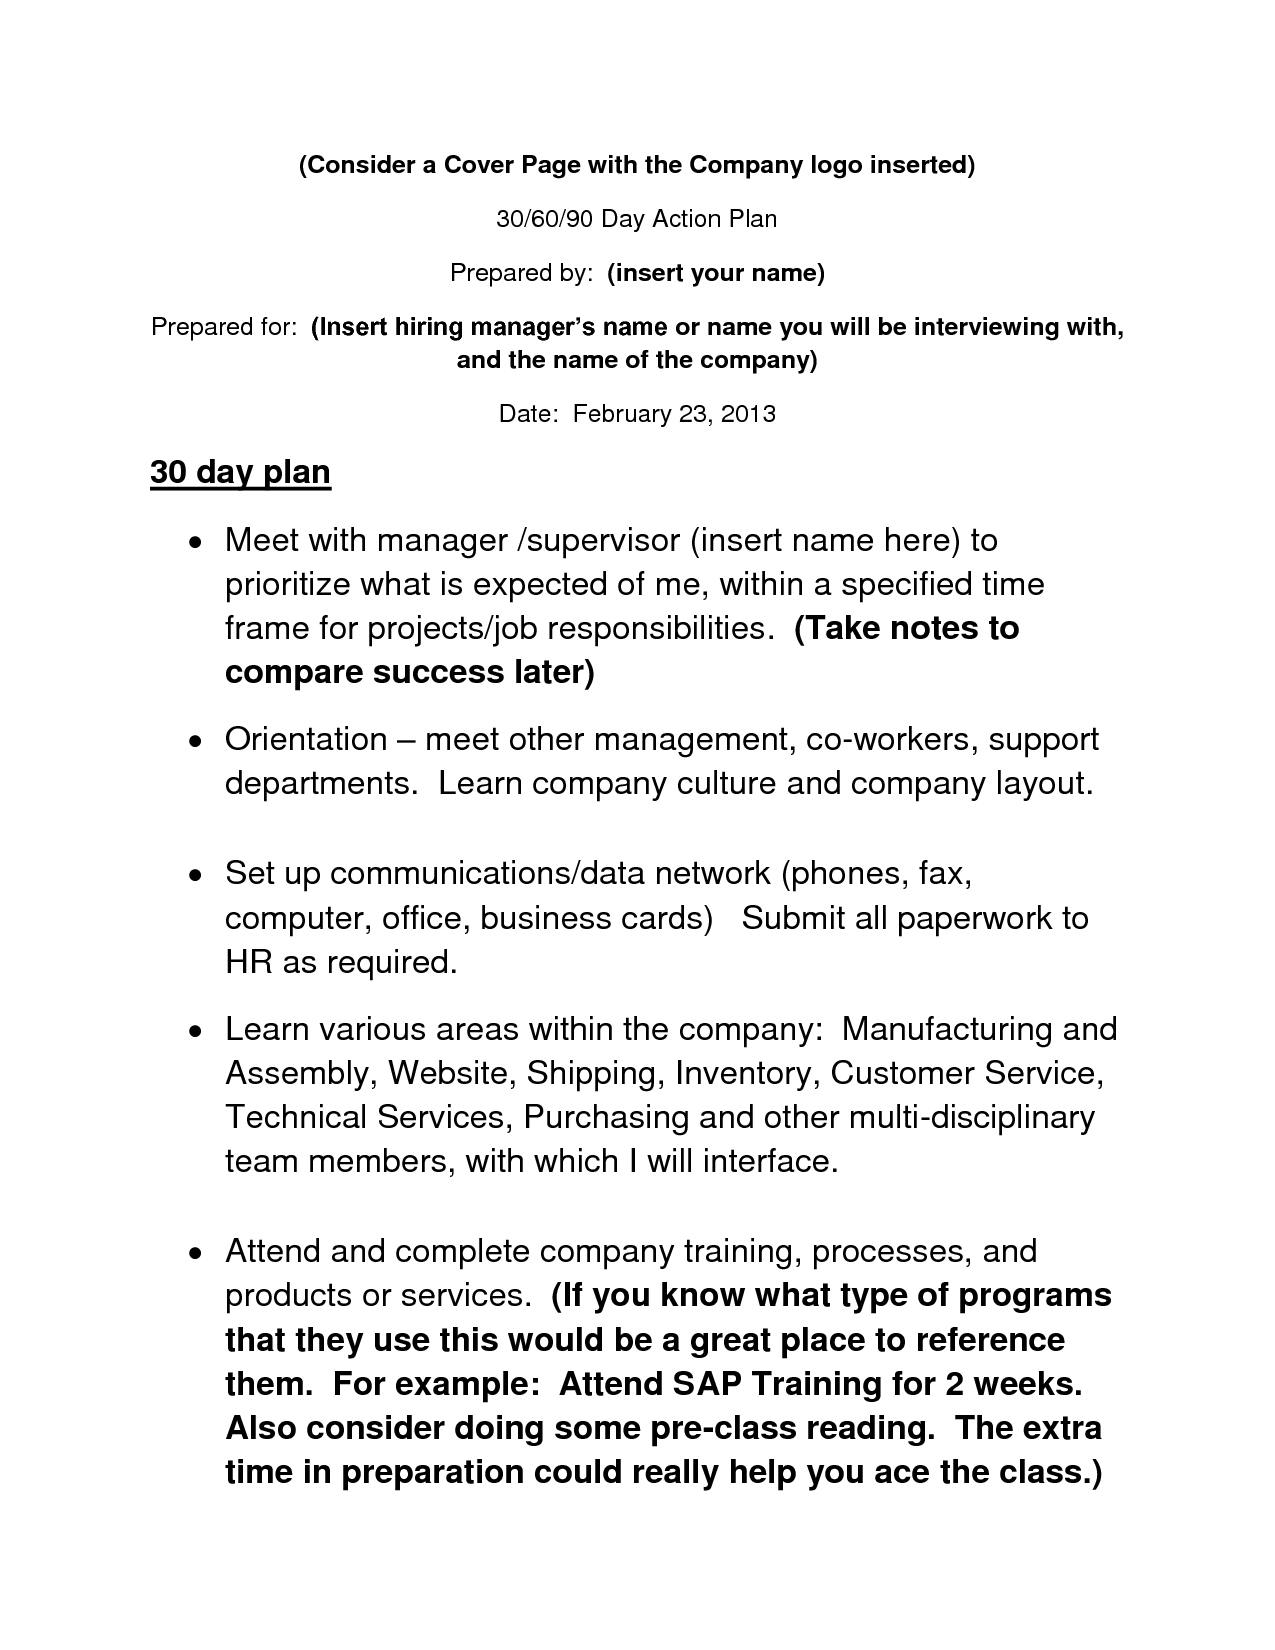 Day Action Plan Template  Job Throughout Customer Service Business Plan Template